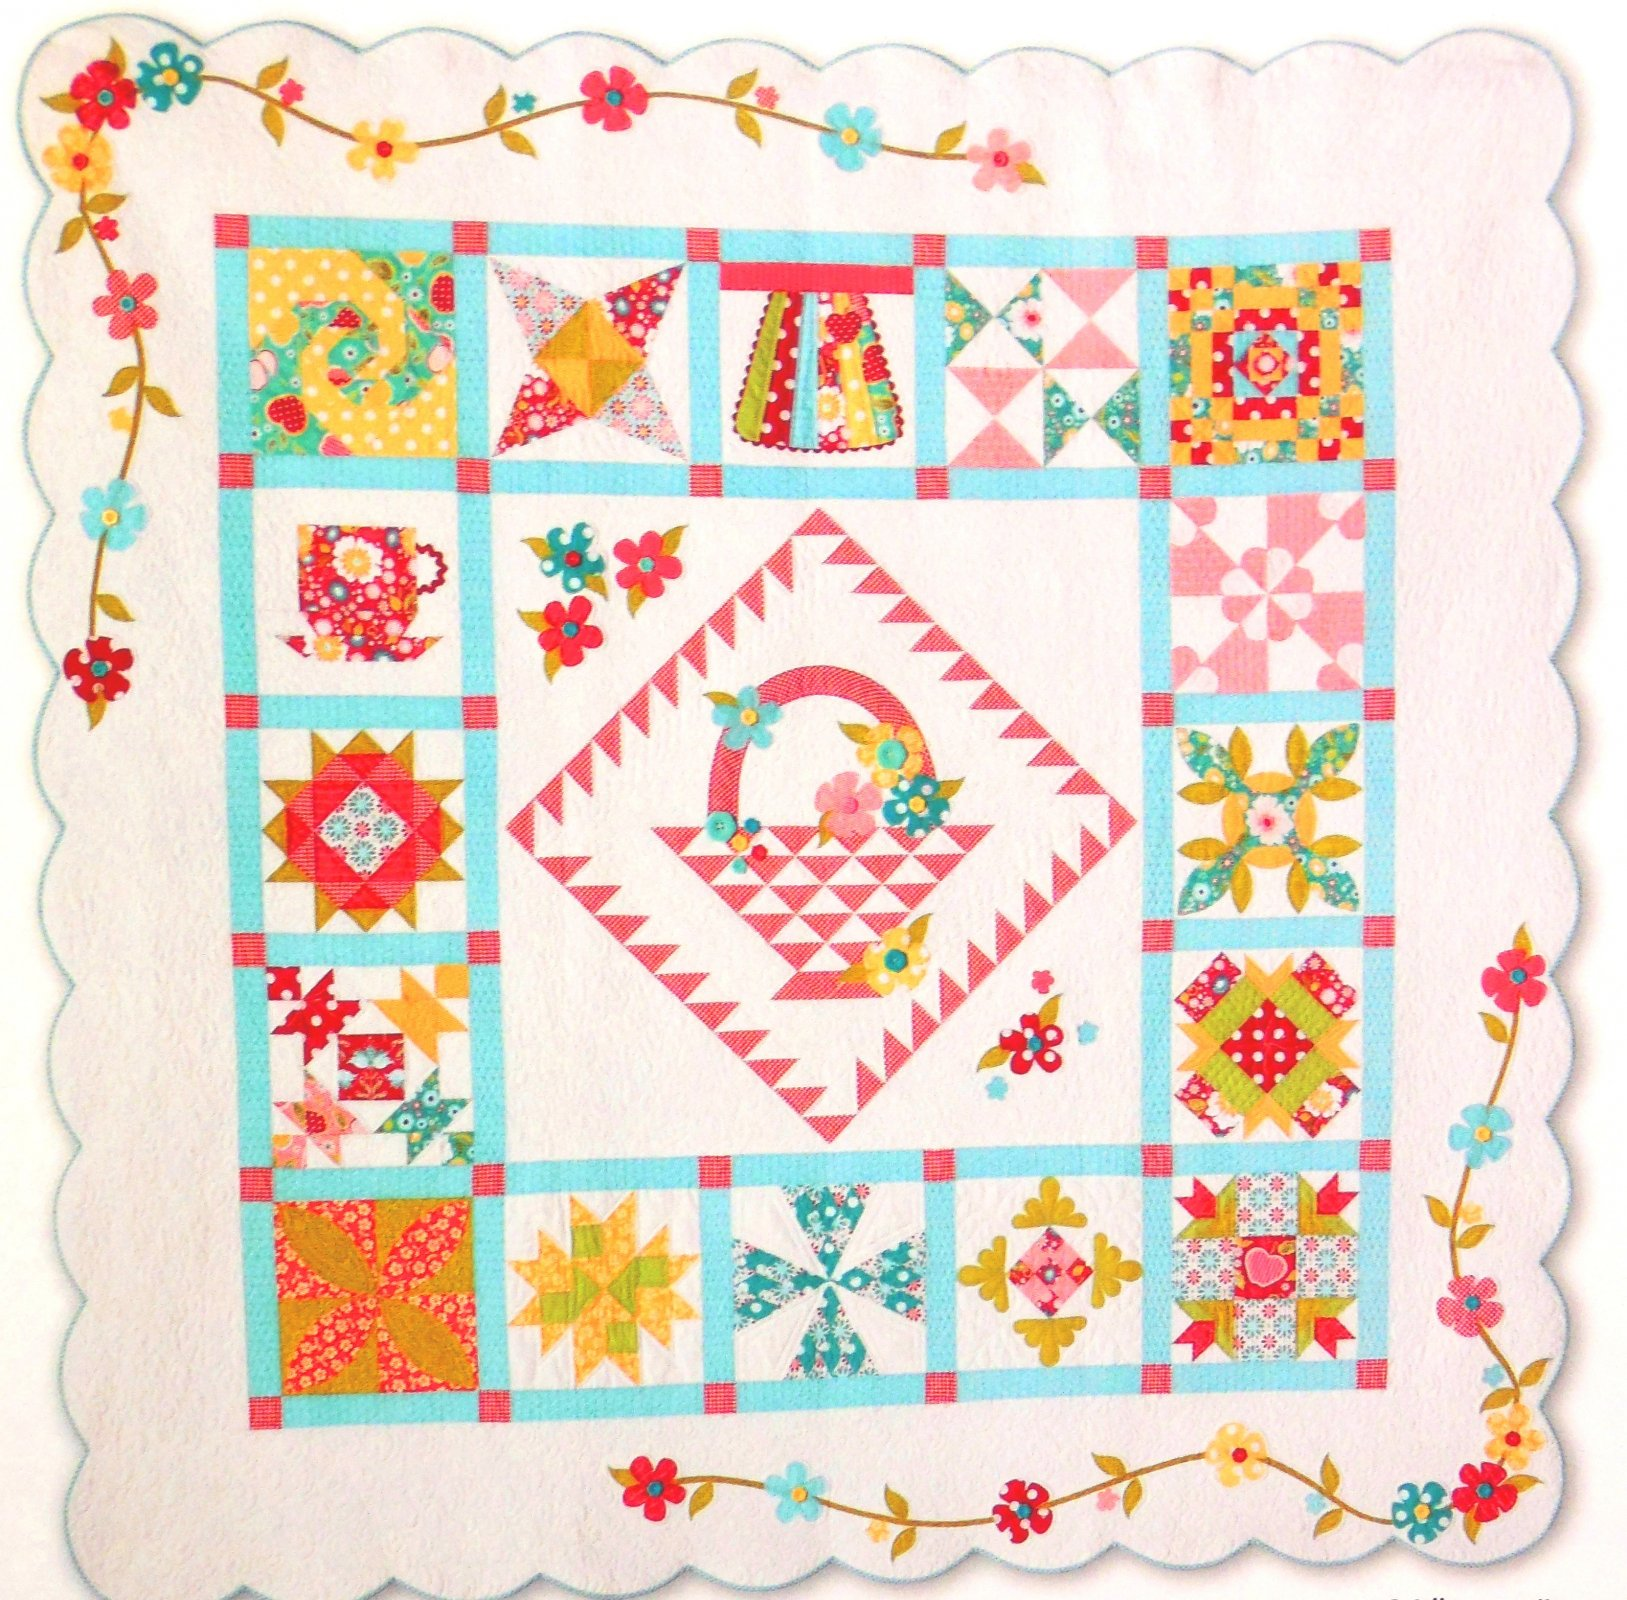 Quilting Ideas For Kitchen : El s Kitchen Quilt Kit - Apple of My Eye Fabrics